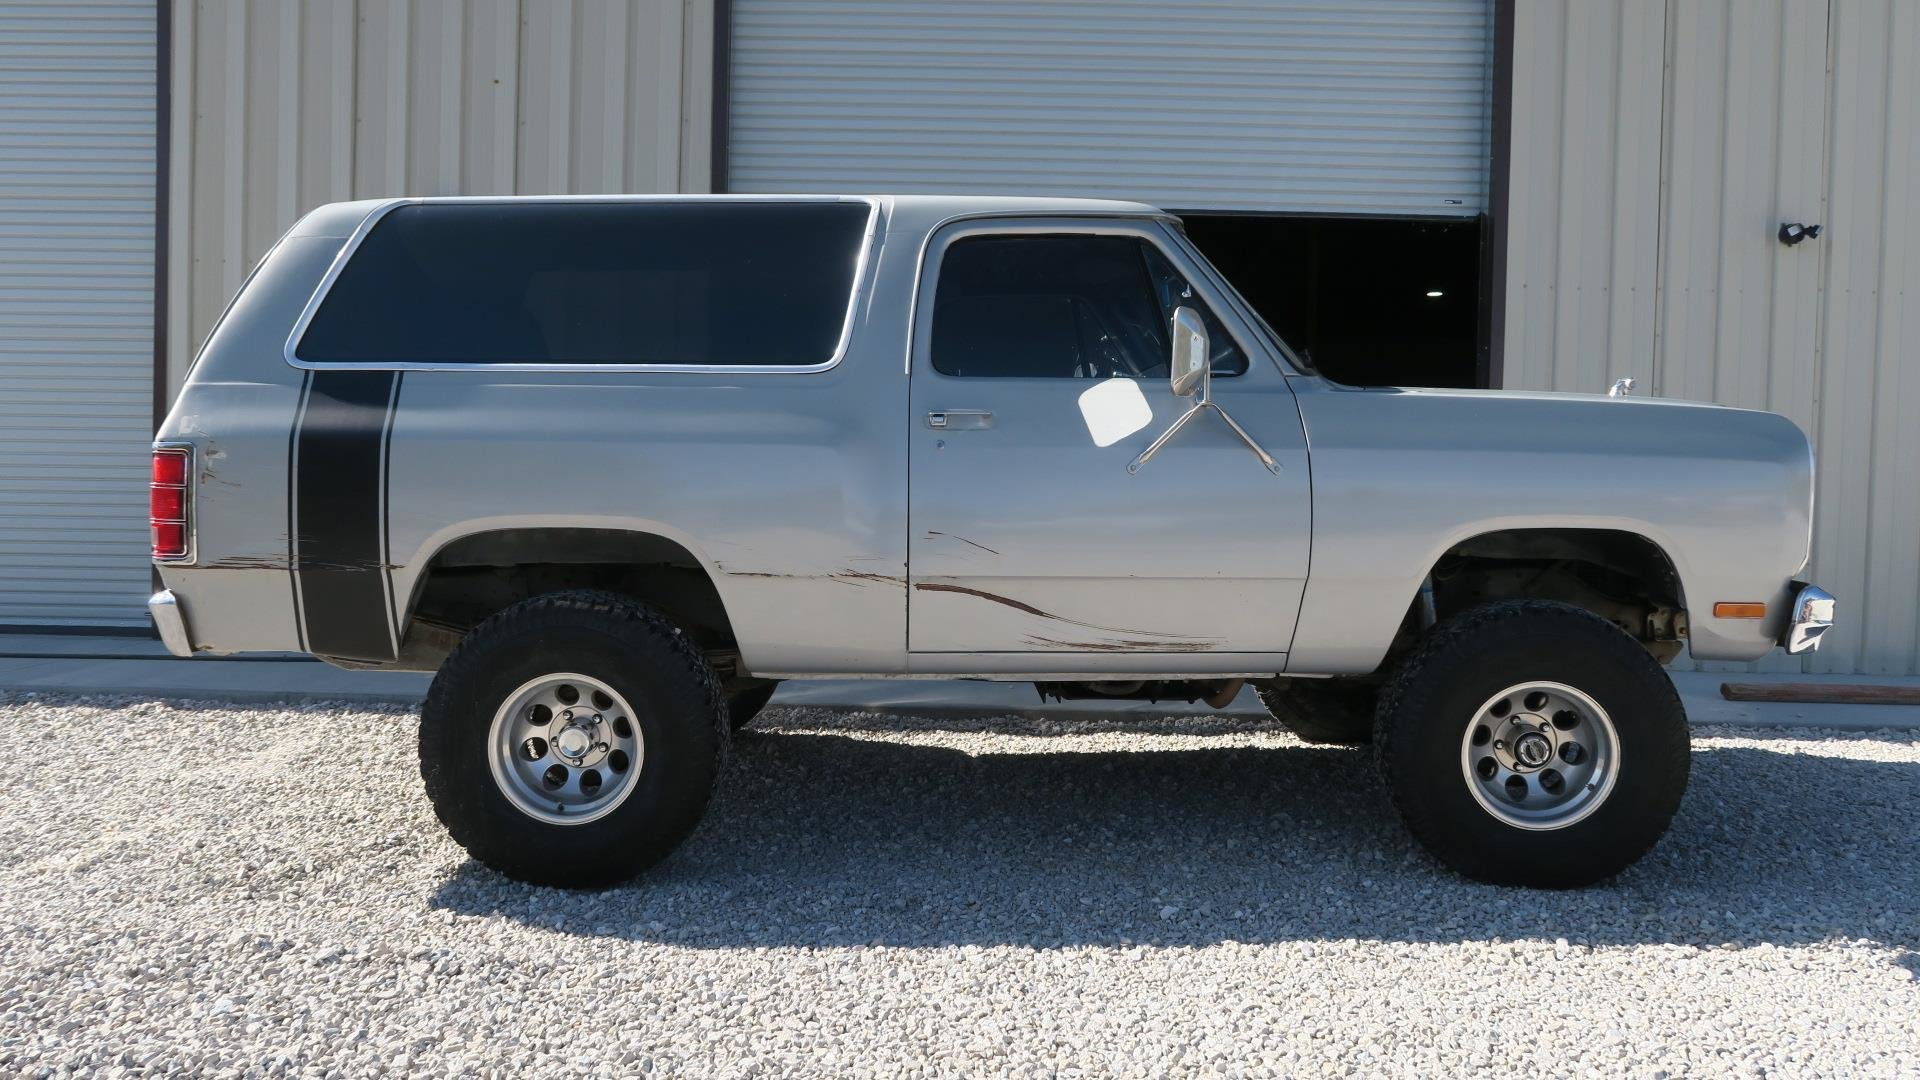 1984 Dodge Ram Charger 360 V8 4X4 Silver 50k miles AT $7.9k For Sale (picture 1 of 6)